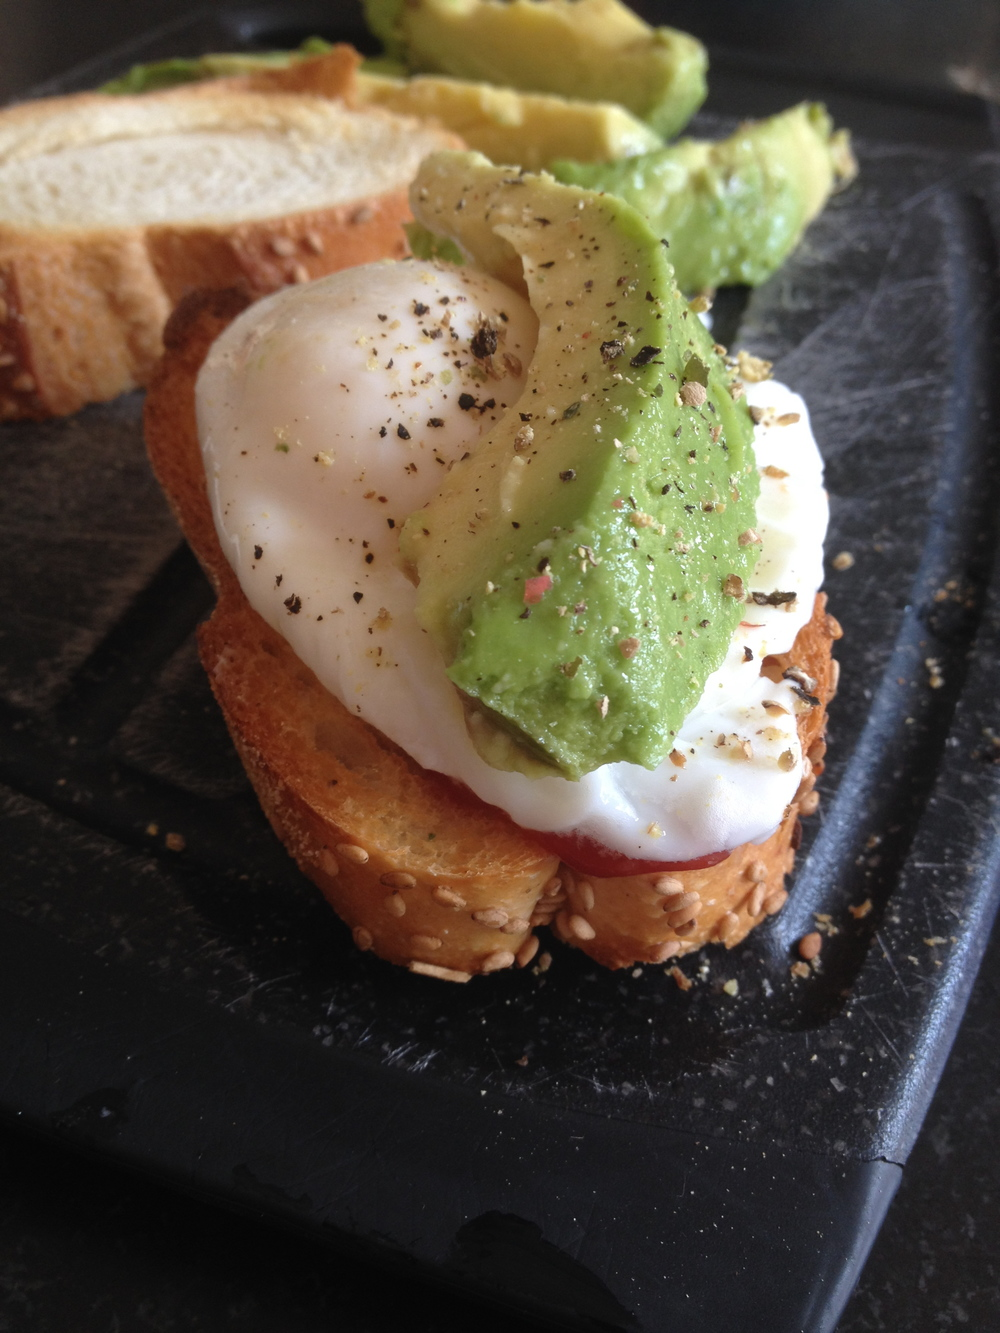 Meal Idea: One poached egg on top of a slice of tomato with some avocado on top. Add some s&p if you like. Try to keep this on whole grain toast to keep the glycemic index low (notice I gave in to the delicious white italian bread).